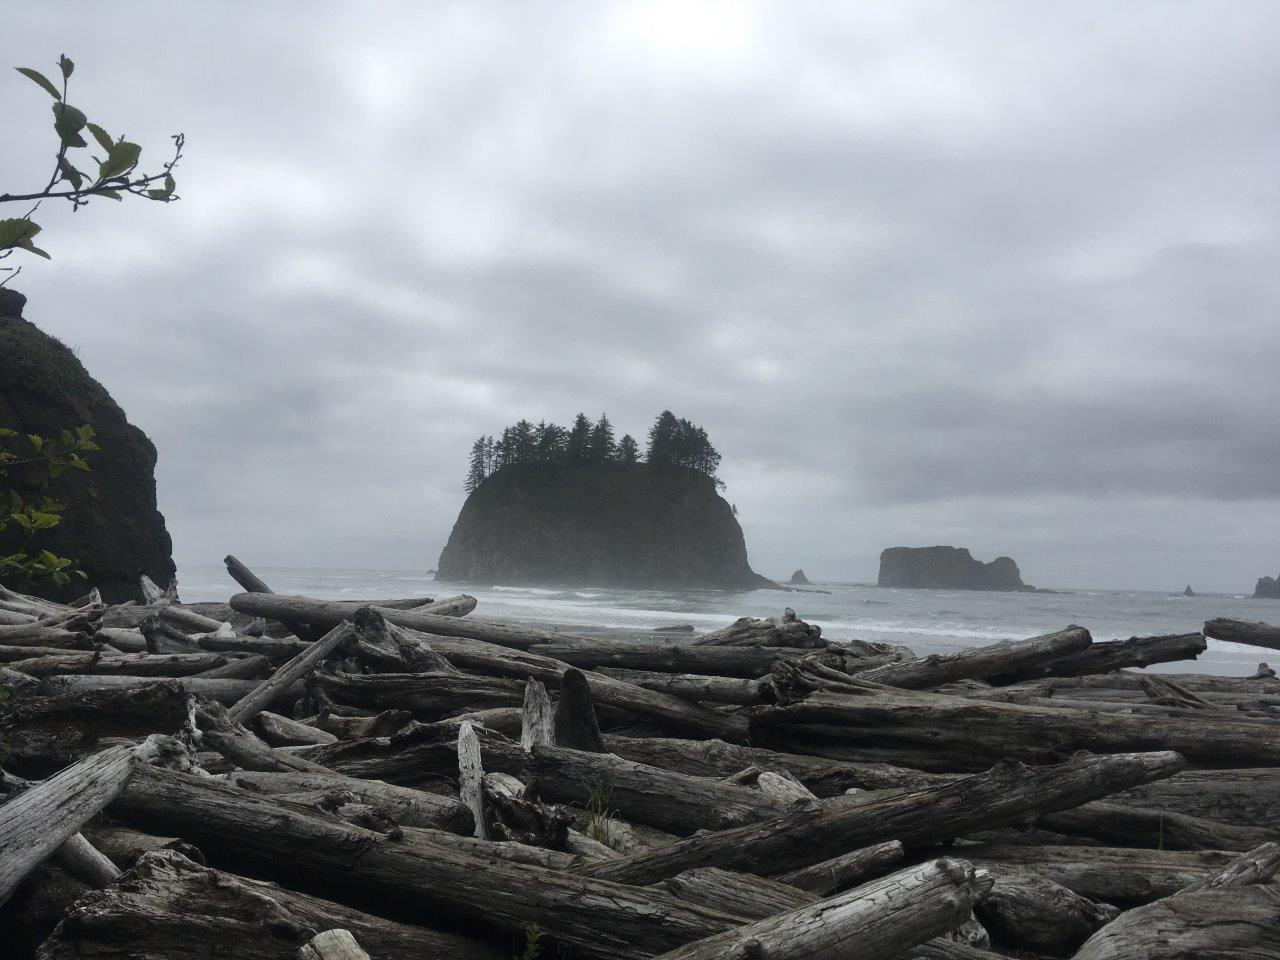 La Push coast, Washington state